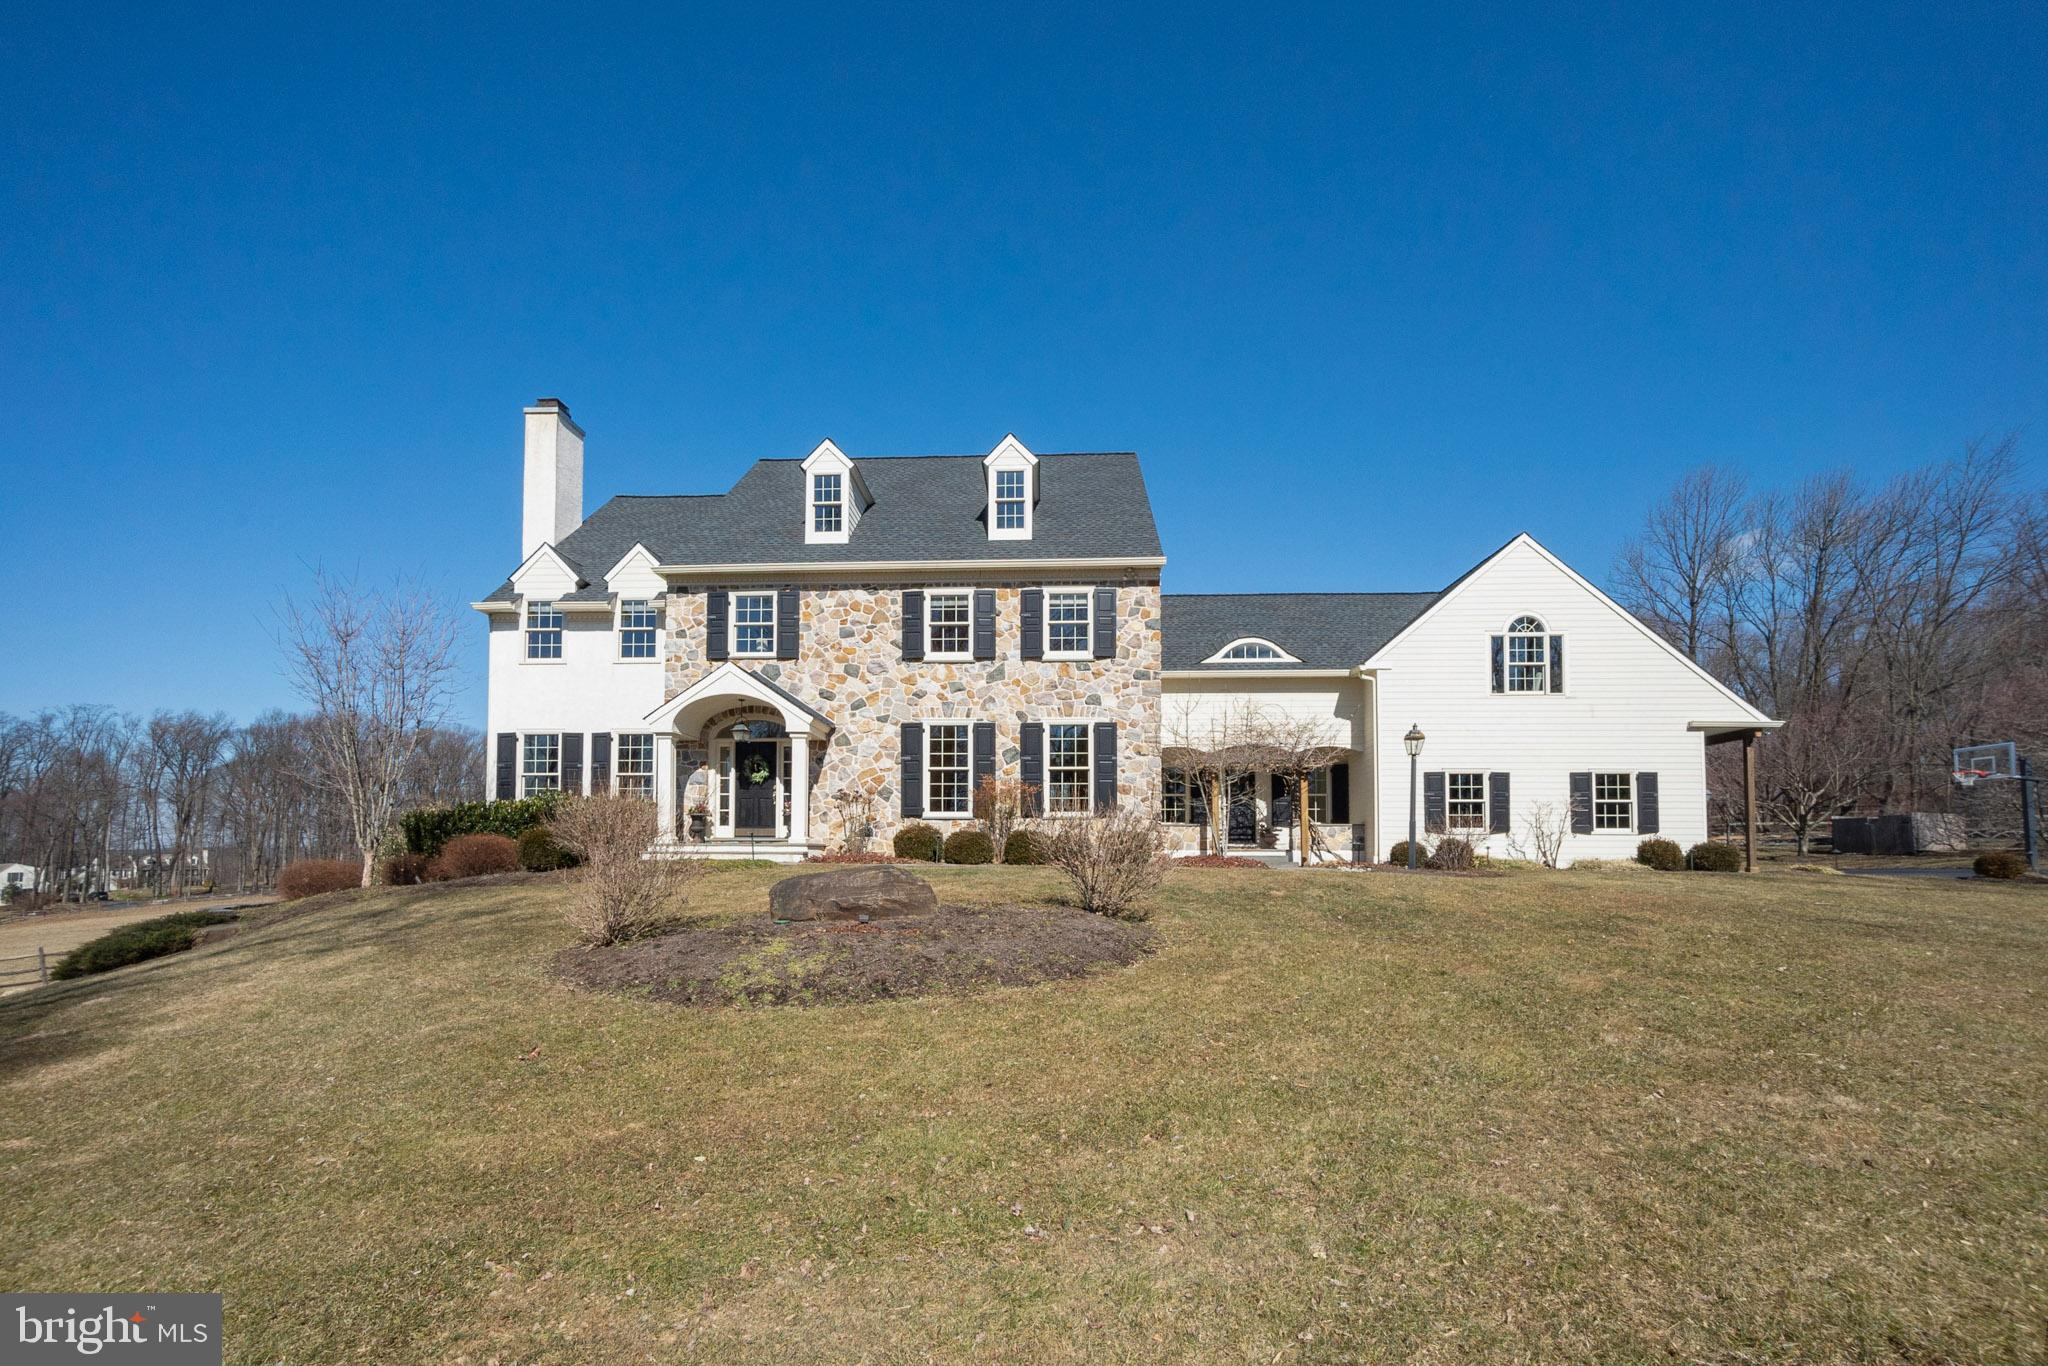 Homes For Sale With In Law Au Pair Suite In Chester County Pennsylvania